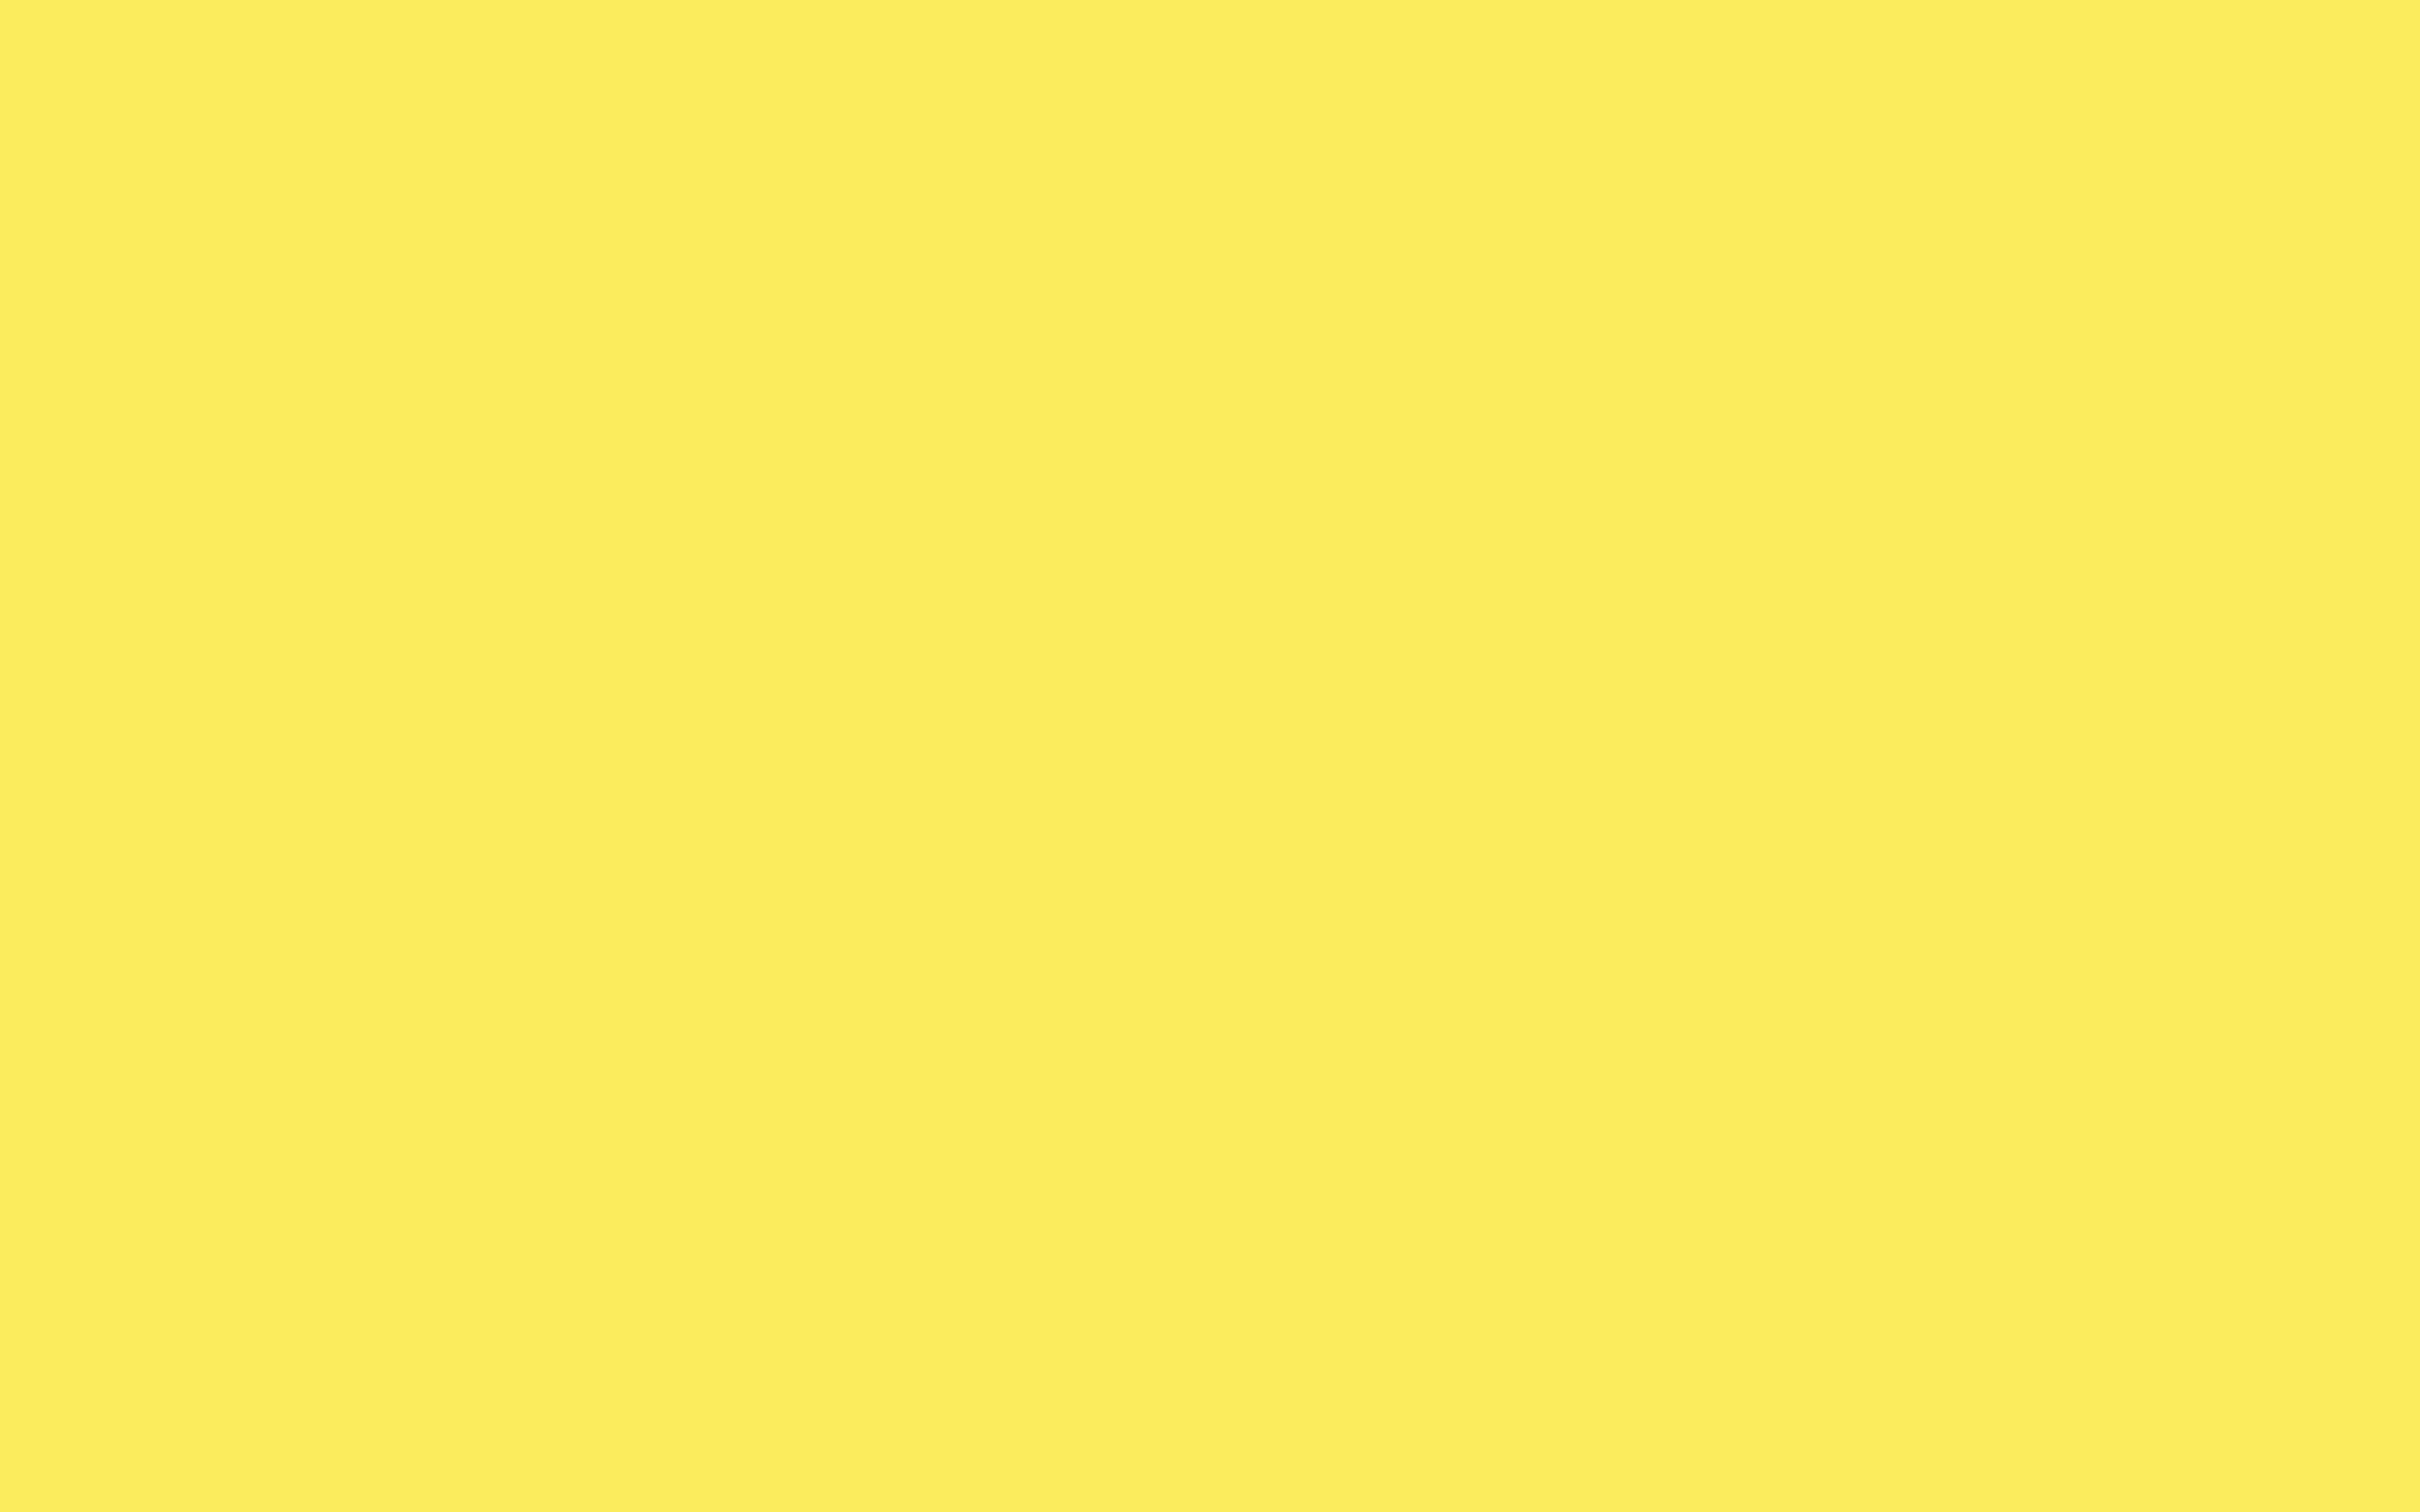 2560x1600 Maize Solid Color Background